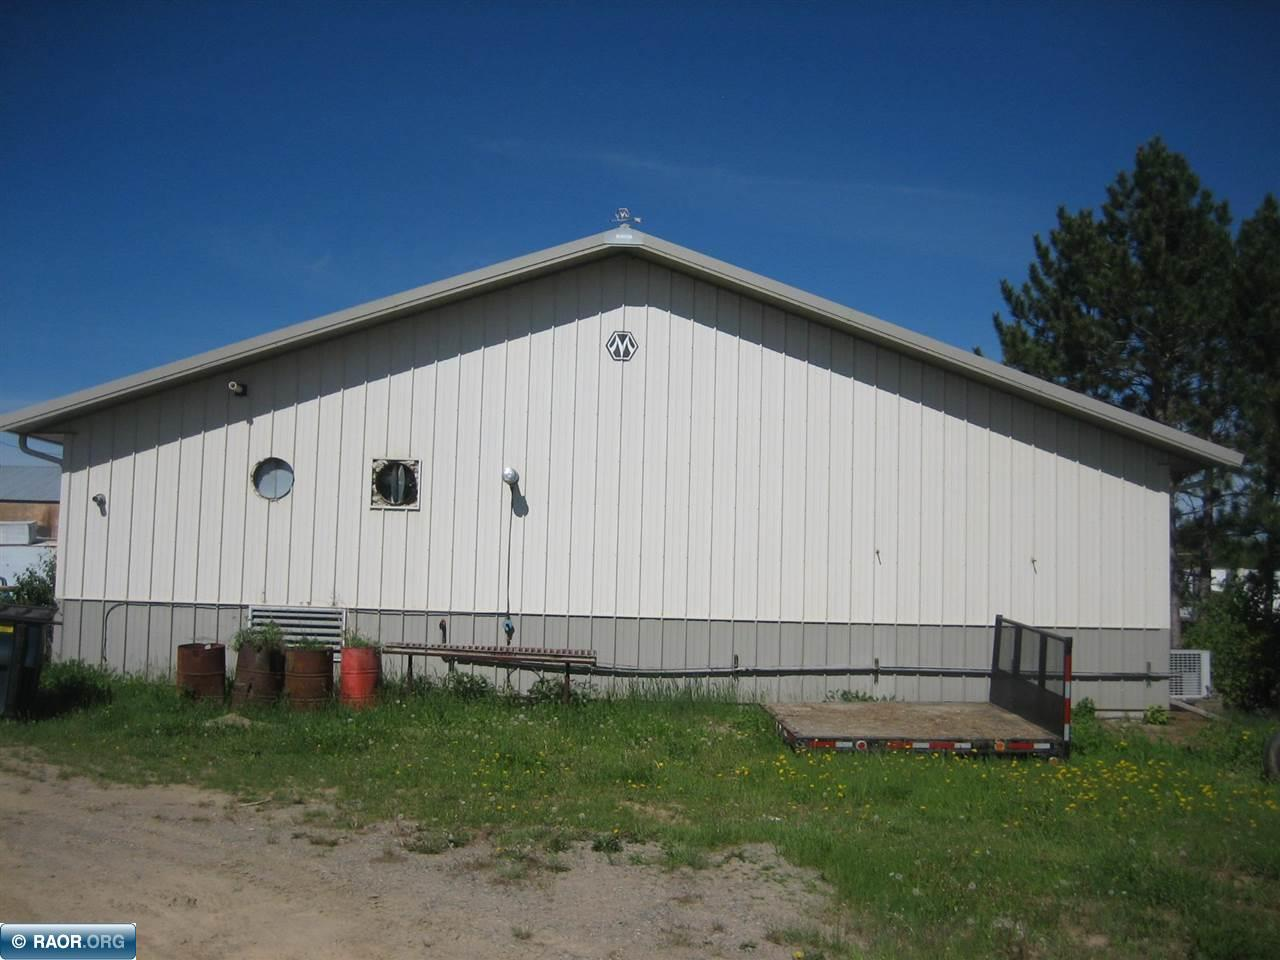 442 N 15th Ave E, Ely, MN 55731